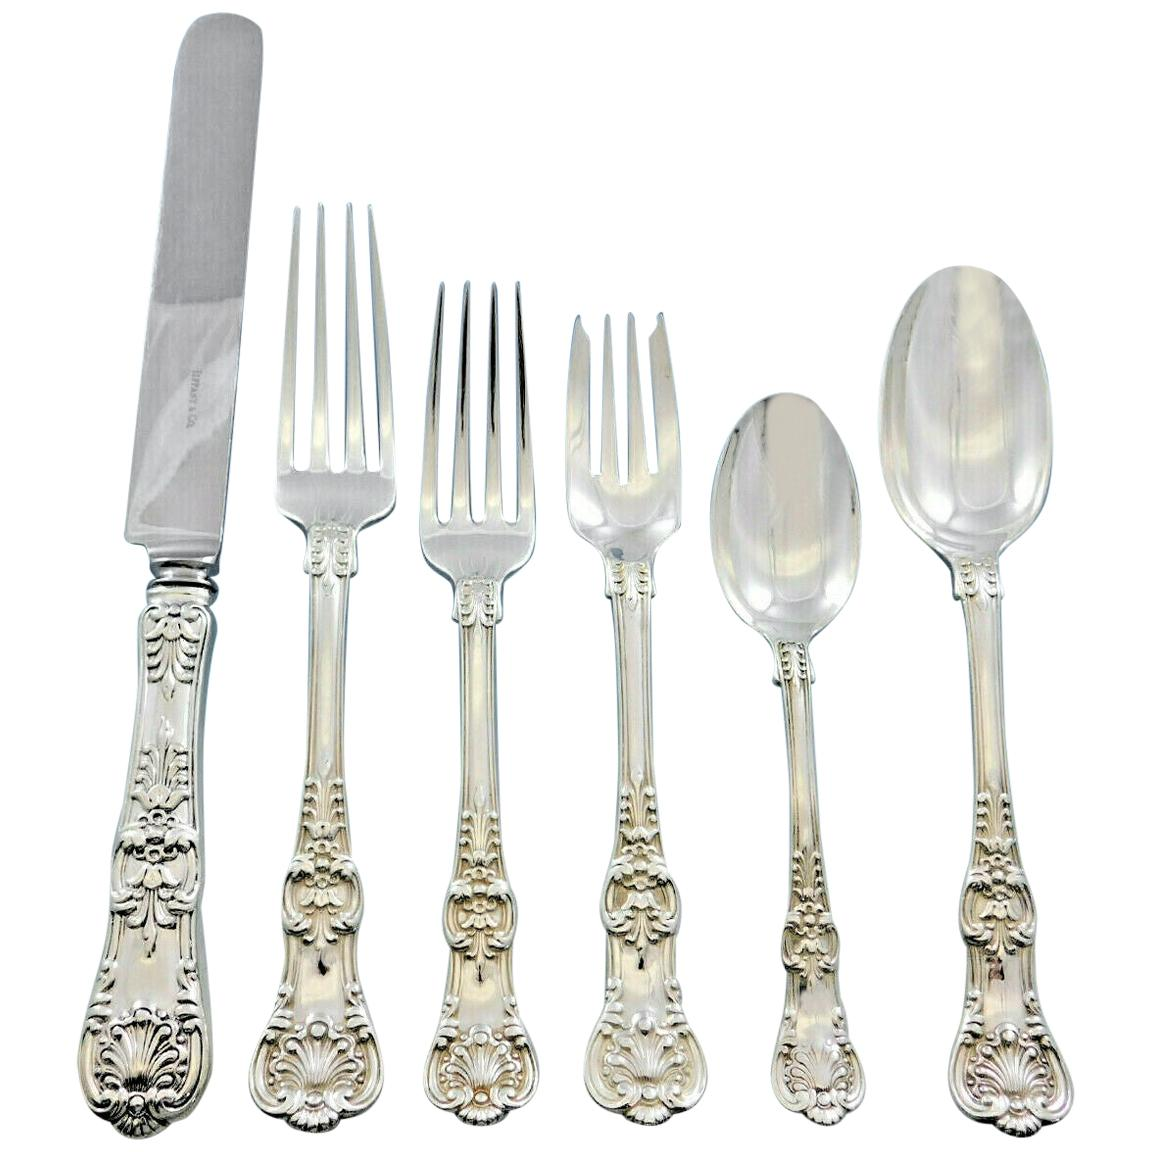 English King, Tiffany & Co. Sterling Silver Flatware Set Service 51 Pcs Dinner